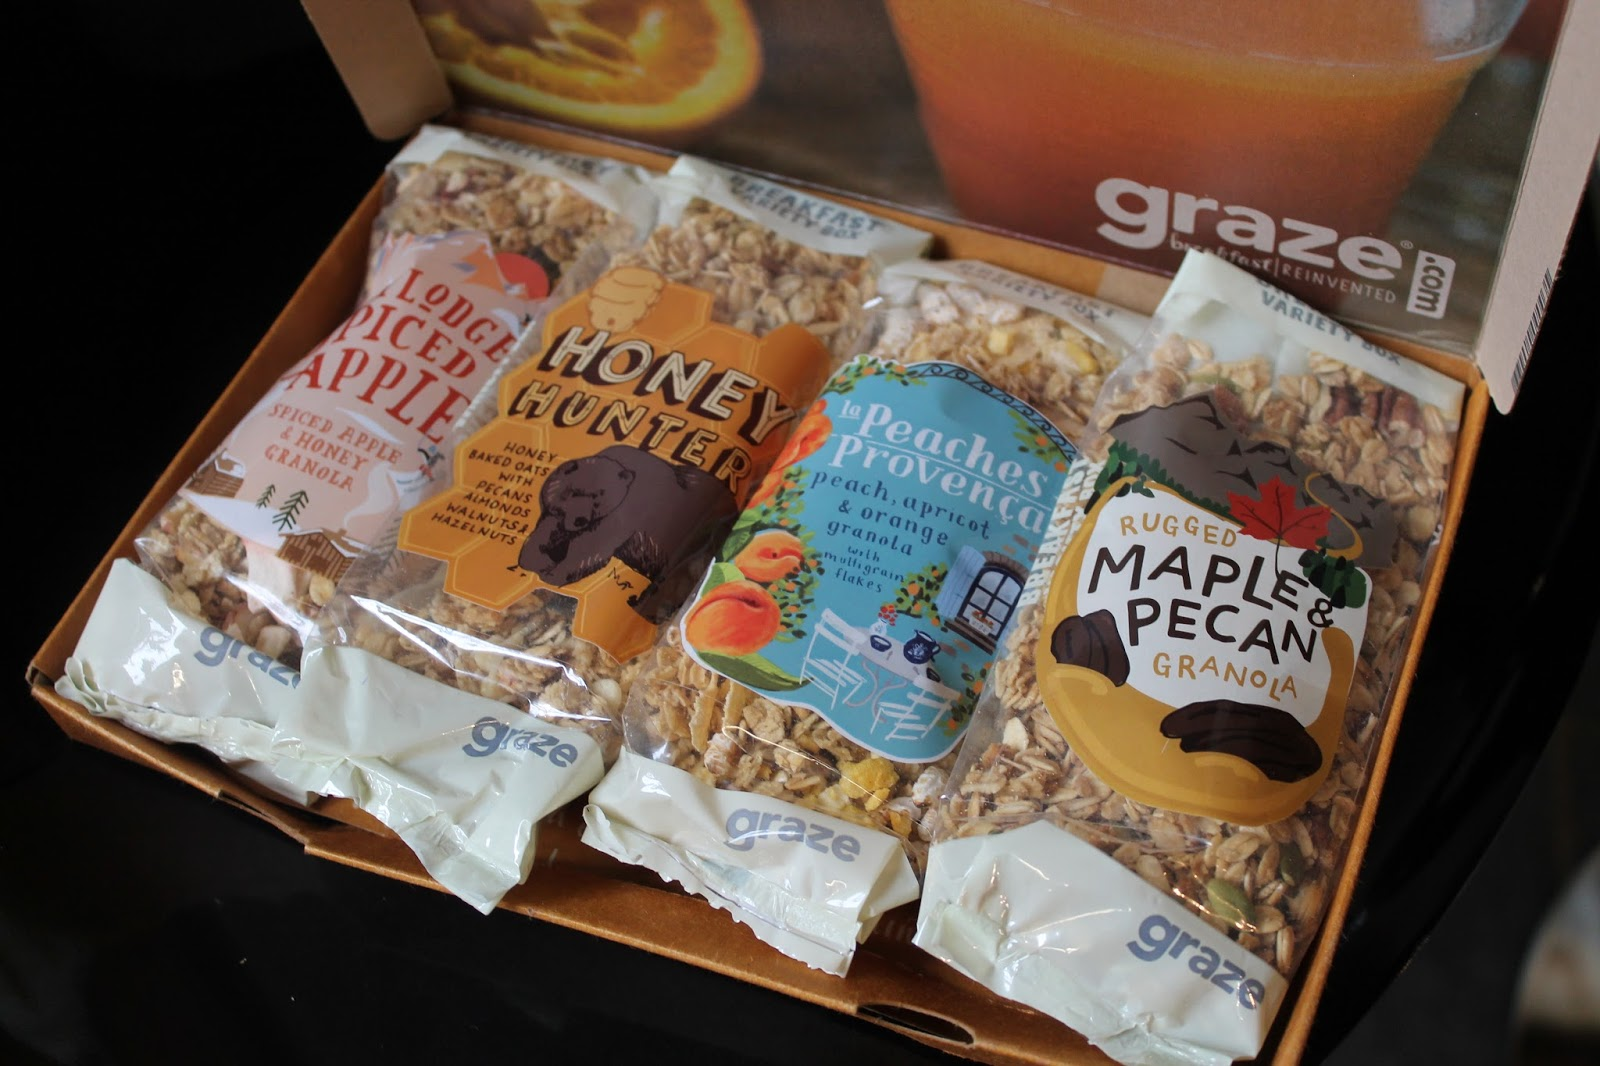 Graze Breakfast Box Review - Granola Porridge